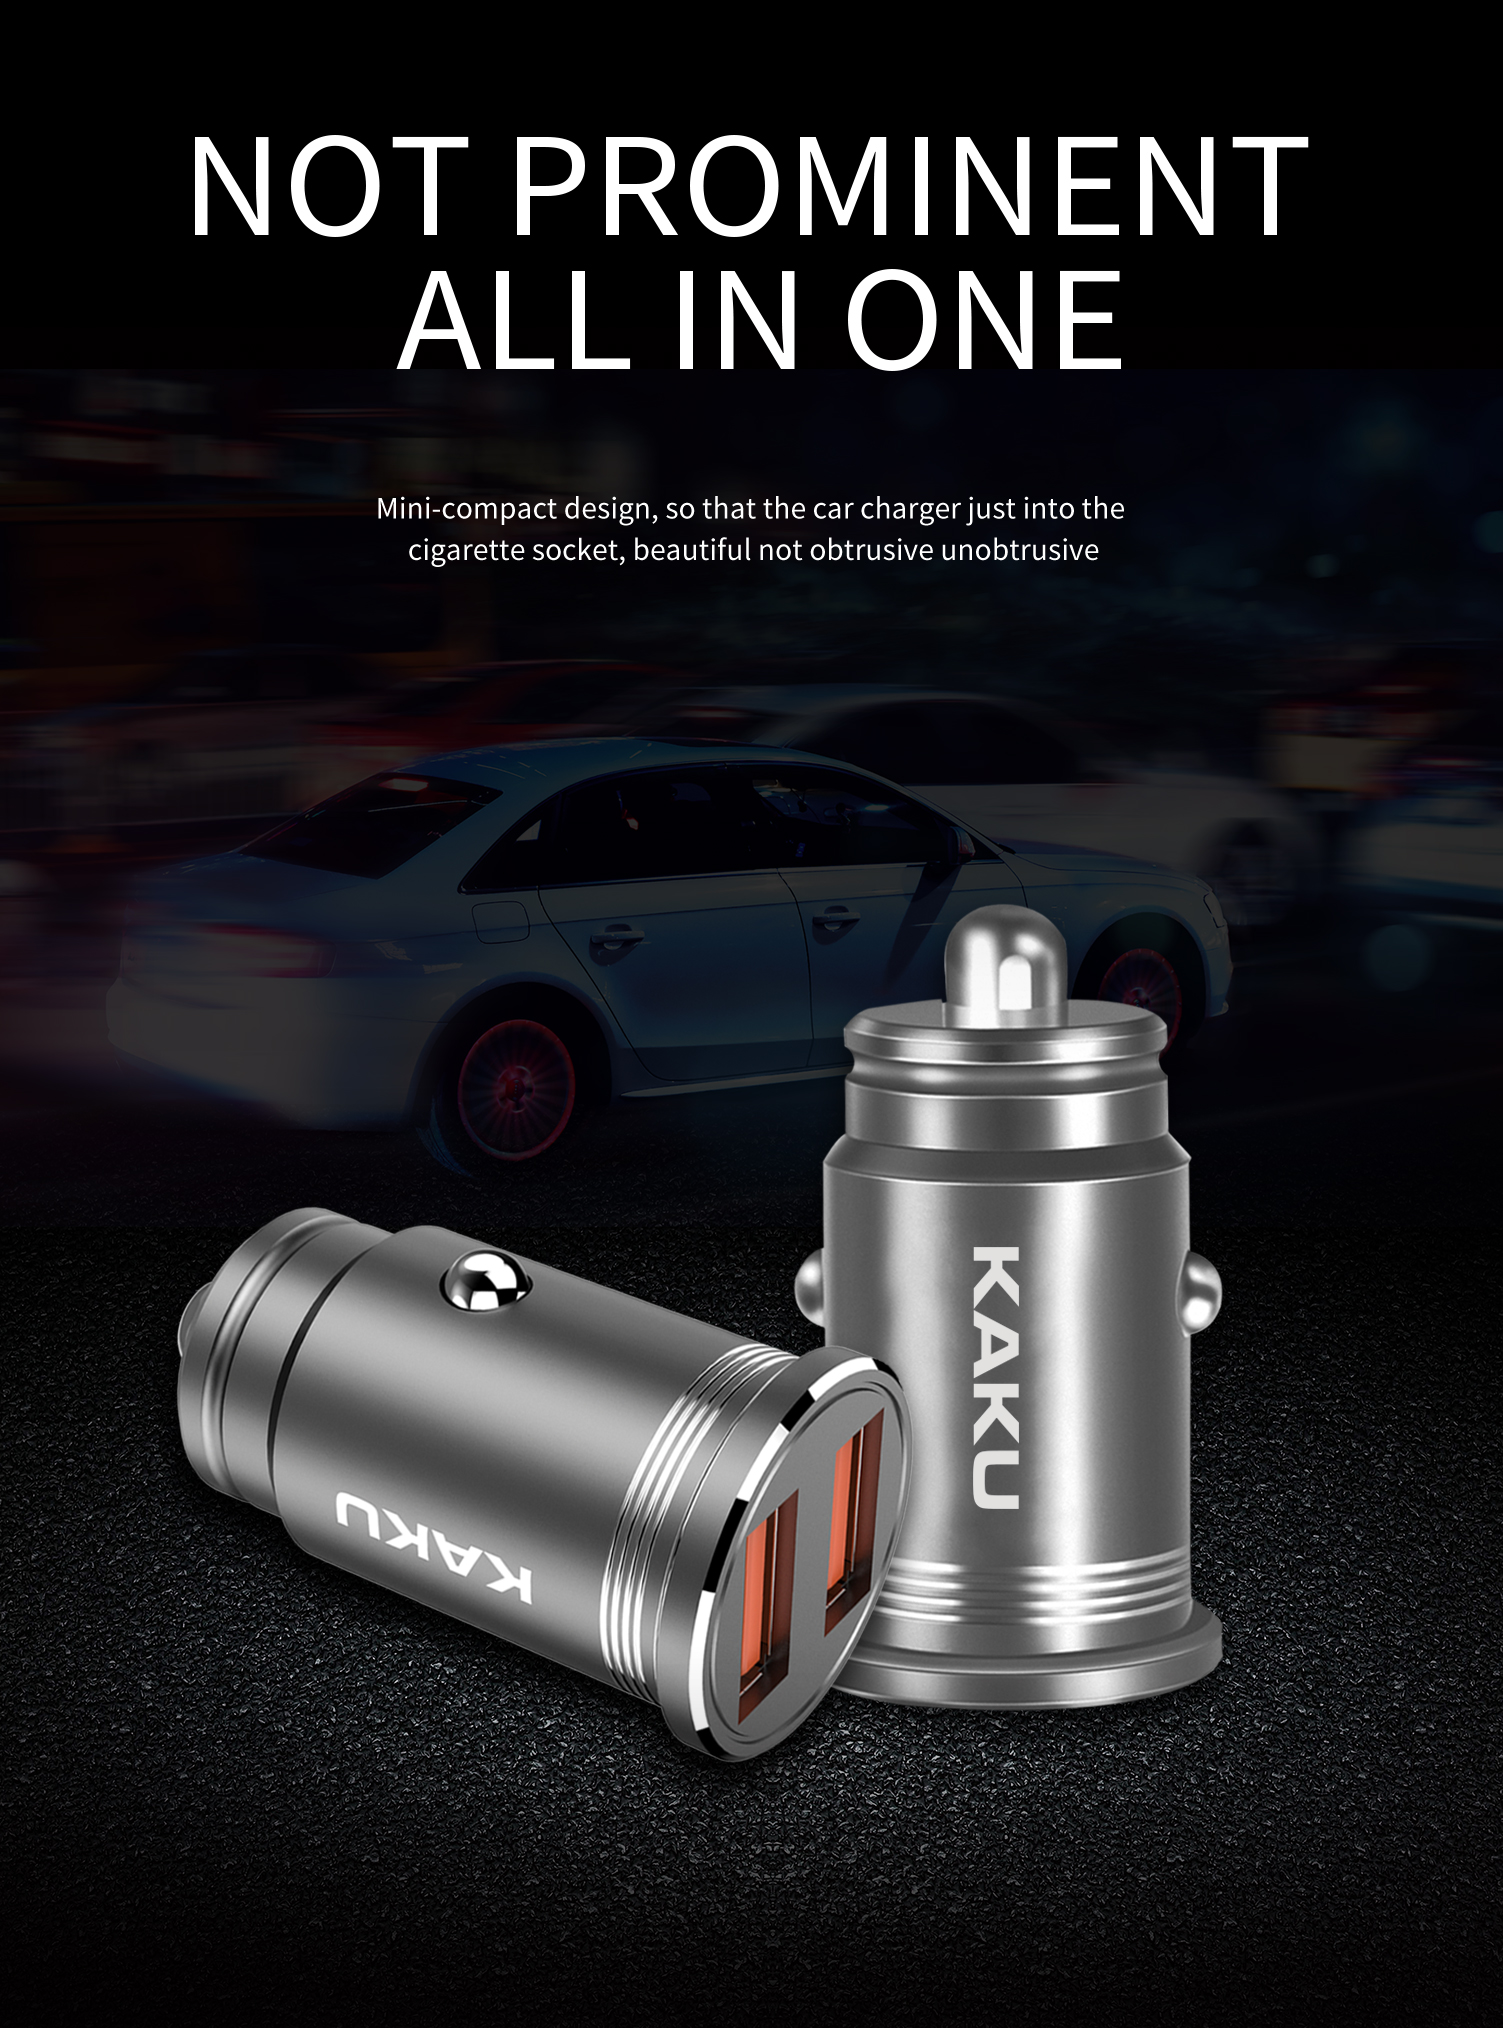 Dual 2 Port USB Car Charger Adapter, 2.1A/3.1A 10W/15W Dual USB Ports Mini Car Charger for Iphone 6